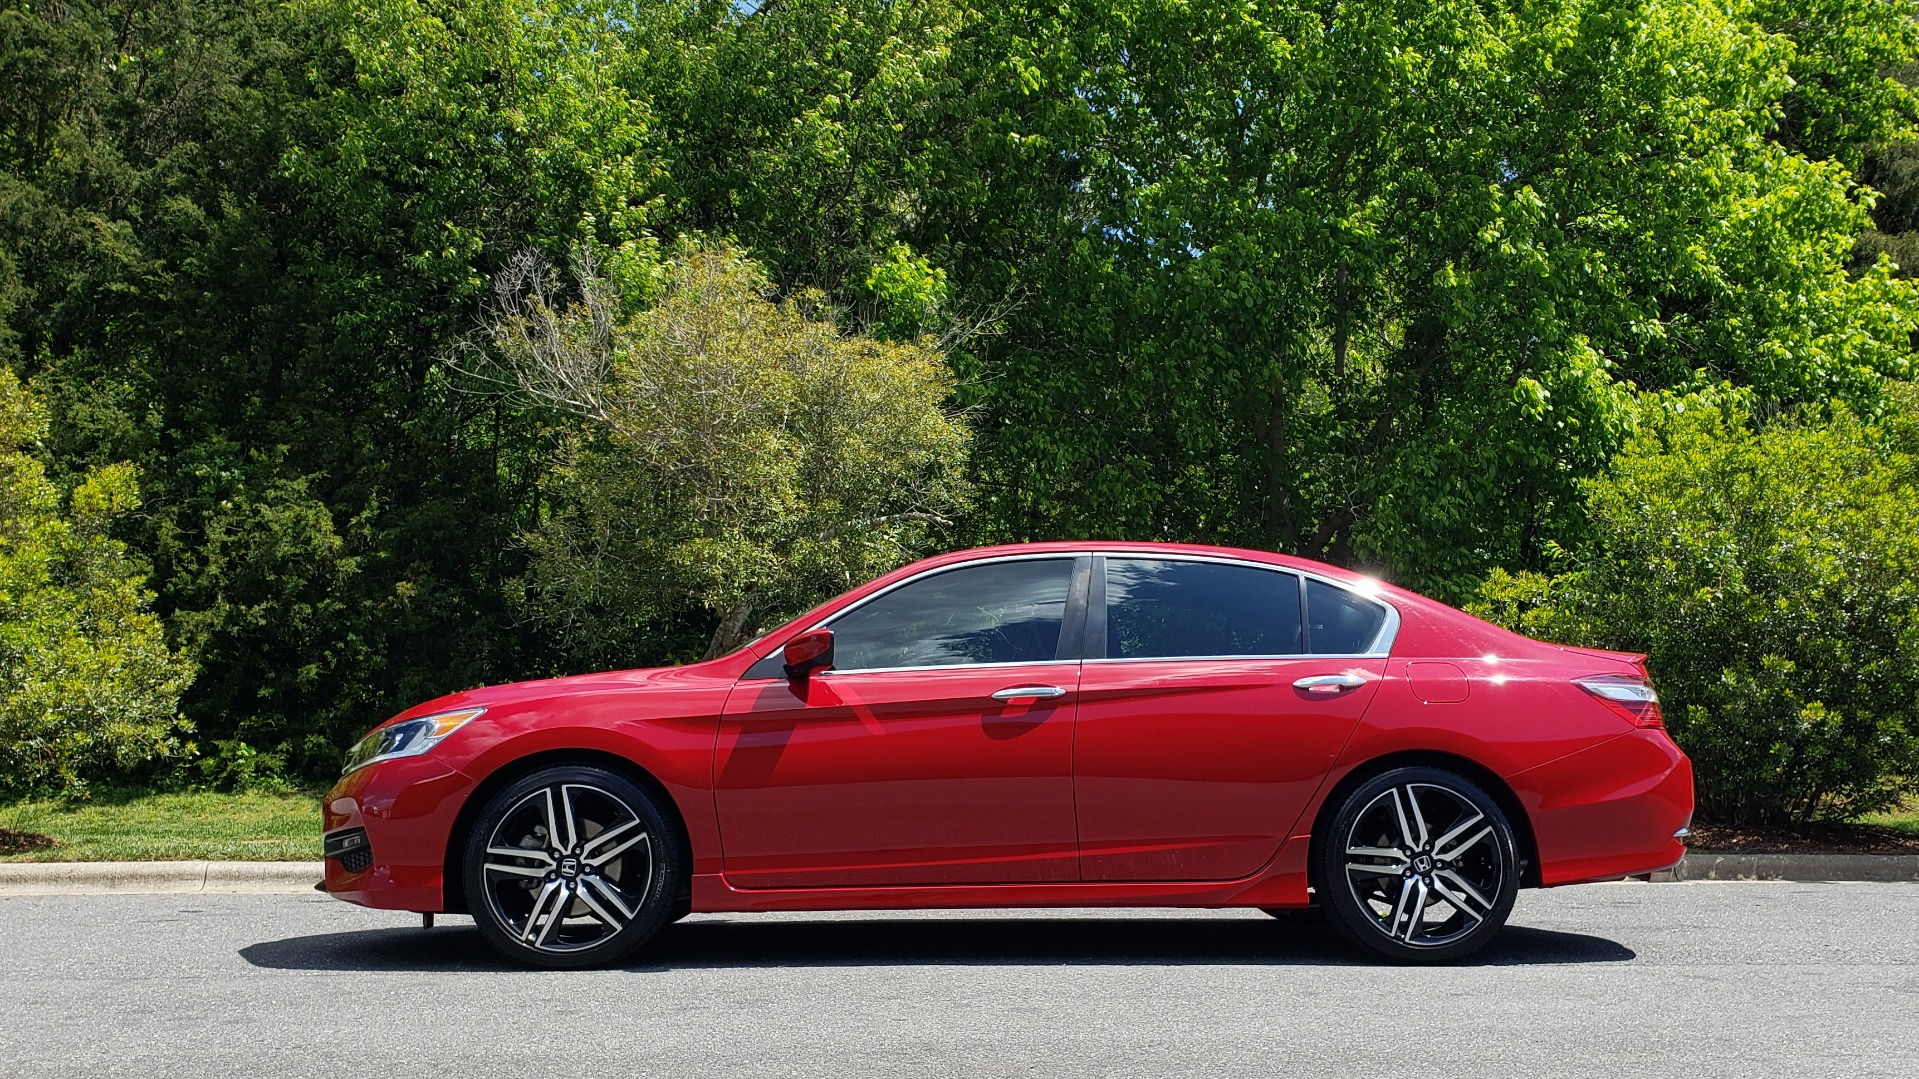 Used 2016 Honda ACCORD SEDAN SPORT / 4-CYL / CVT TRANS / SPOILER / 19IN ALLOY WHEELS for sale Sold at Formula Imports in Charlotte NC 28227 2